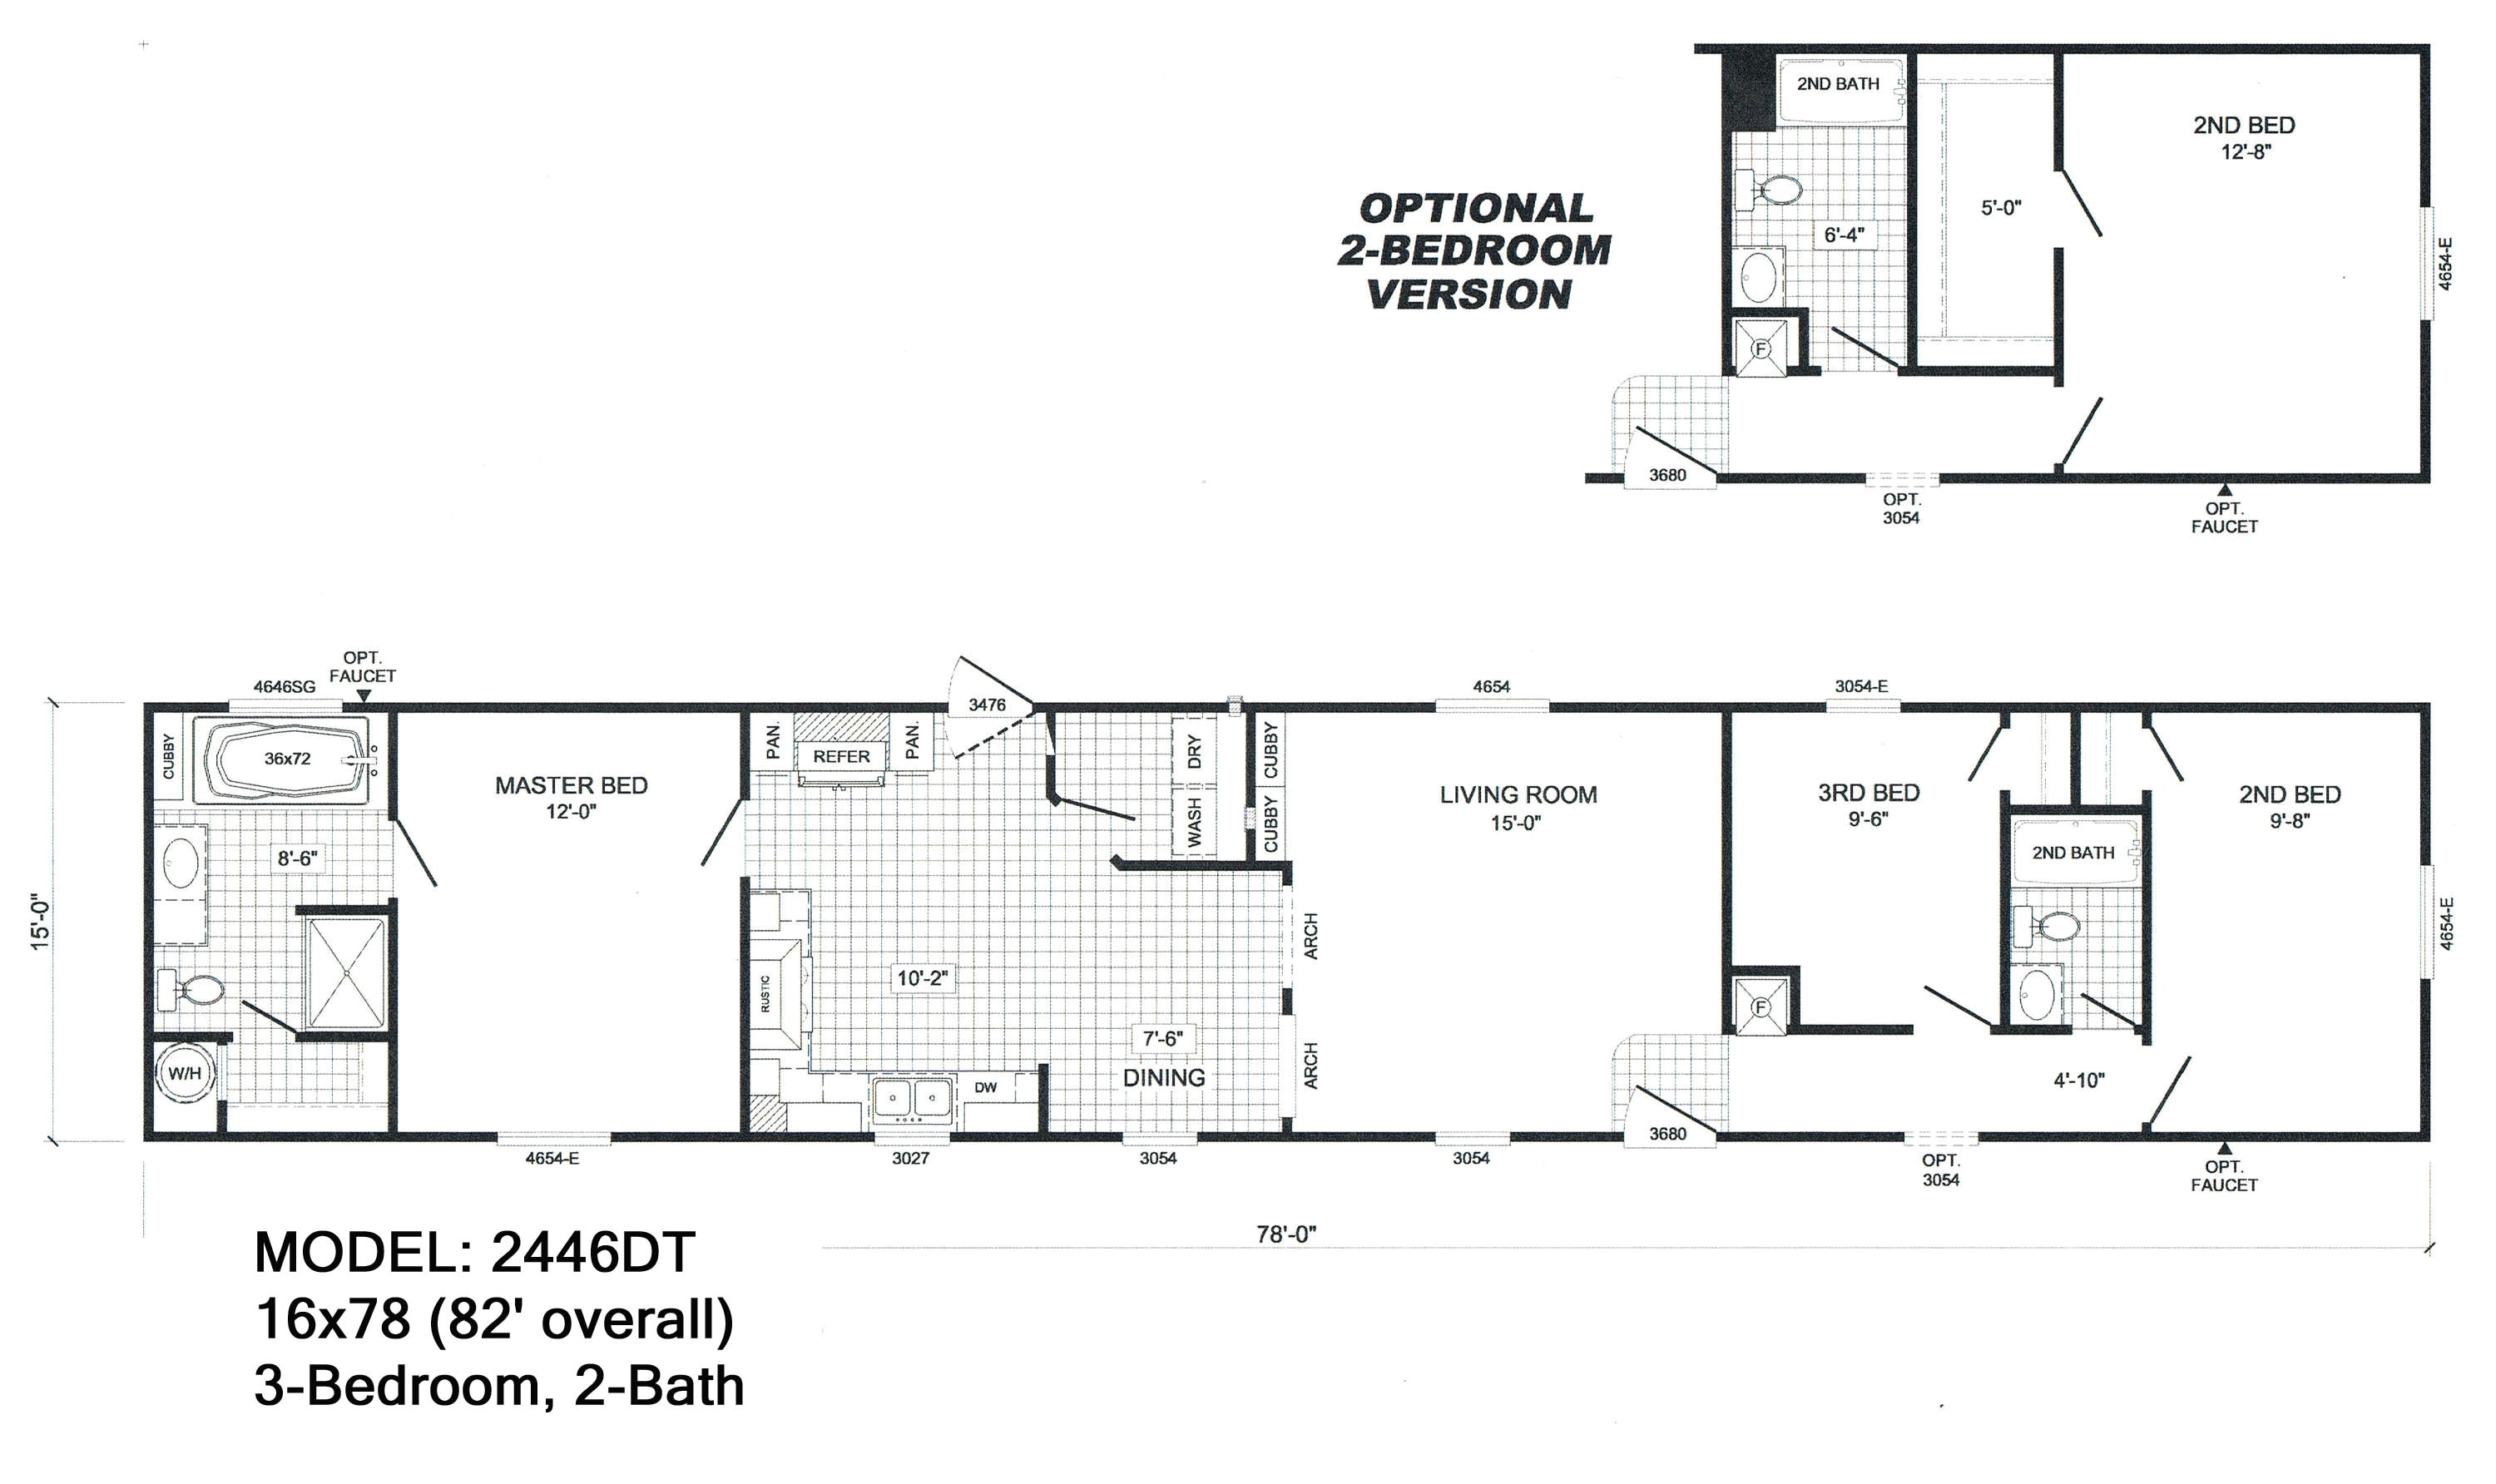 1 Bedroom Mobile Homes Floor Plans 3 Bedroom 2 Bath Single Wide Mobile Home Floor Plans